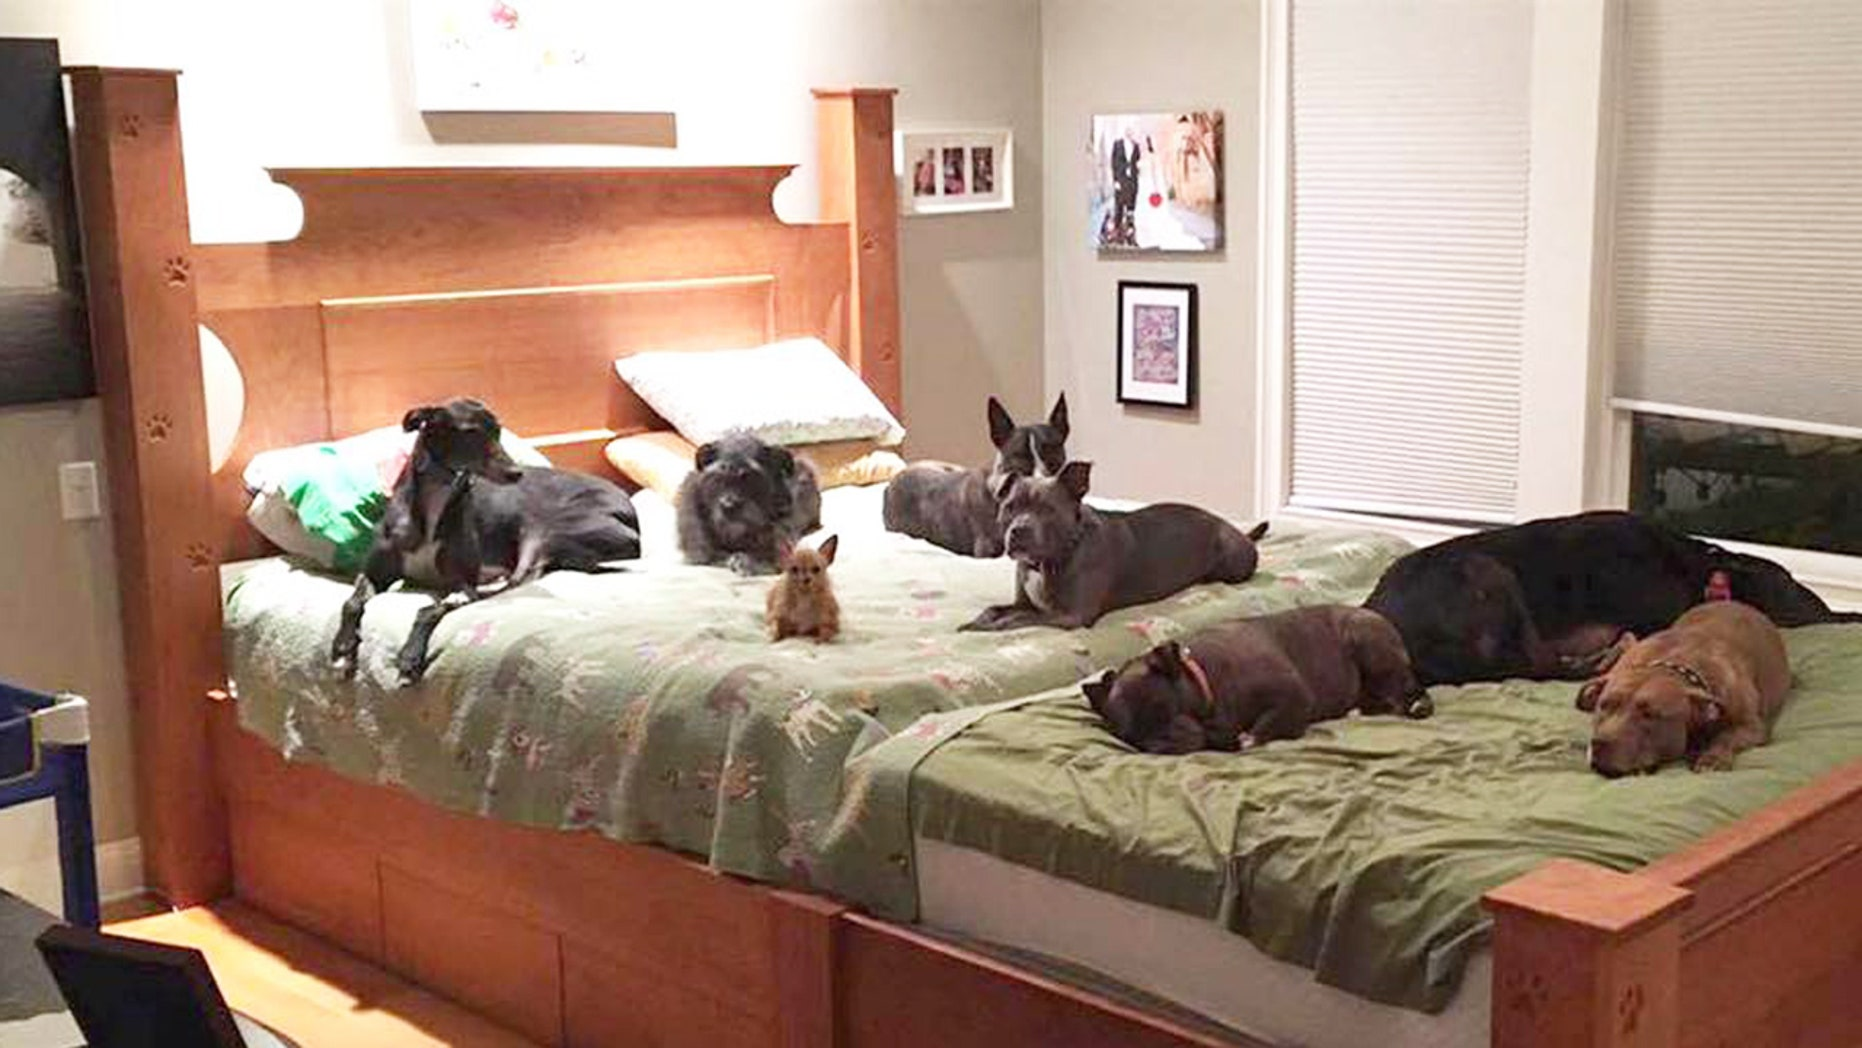 This handcrafted, supersized bed has room for two humans and eight four-legged friends.